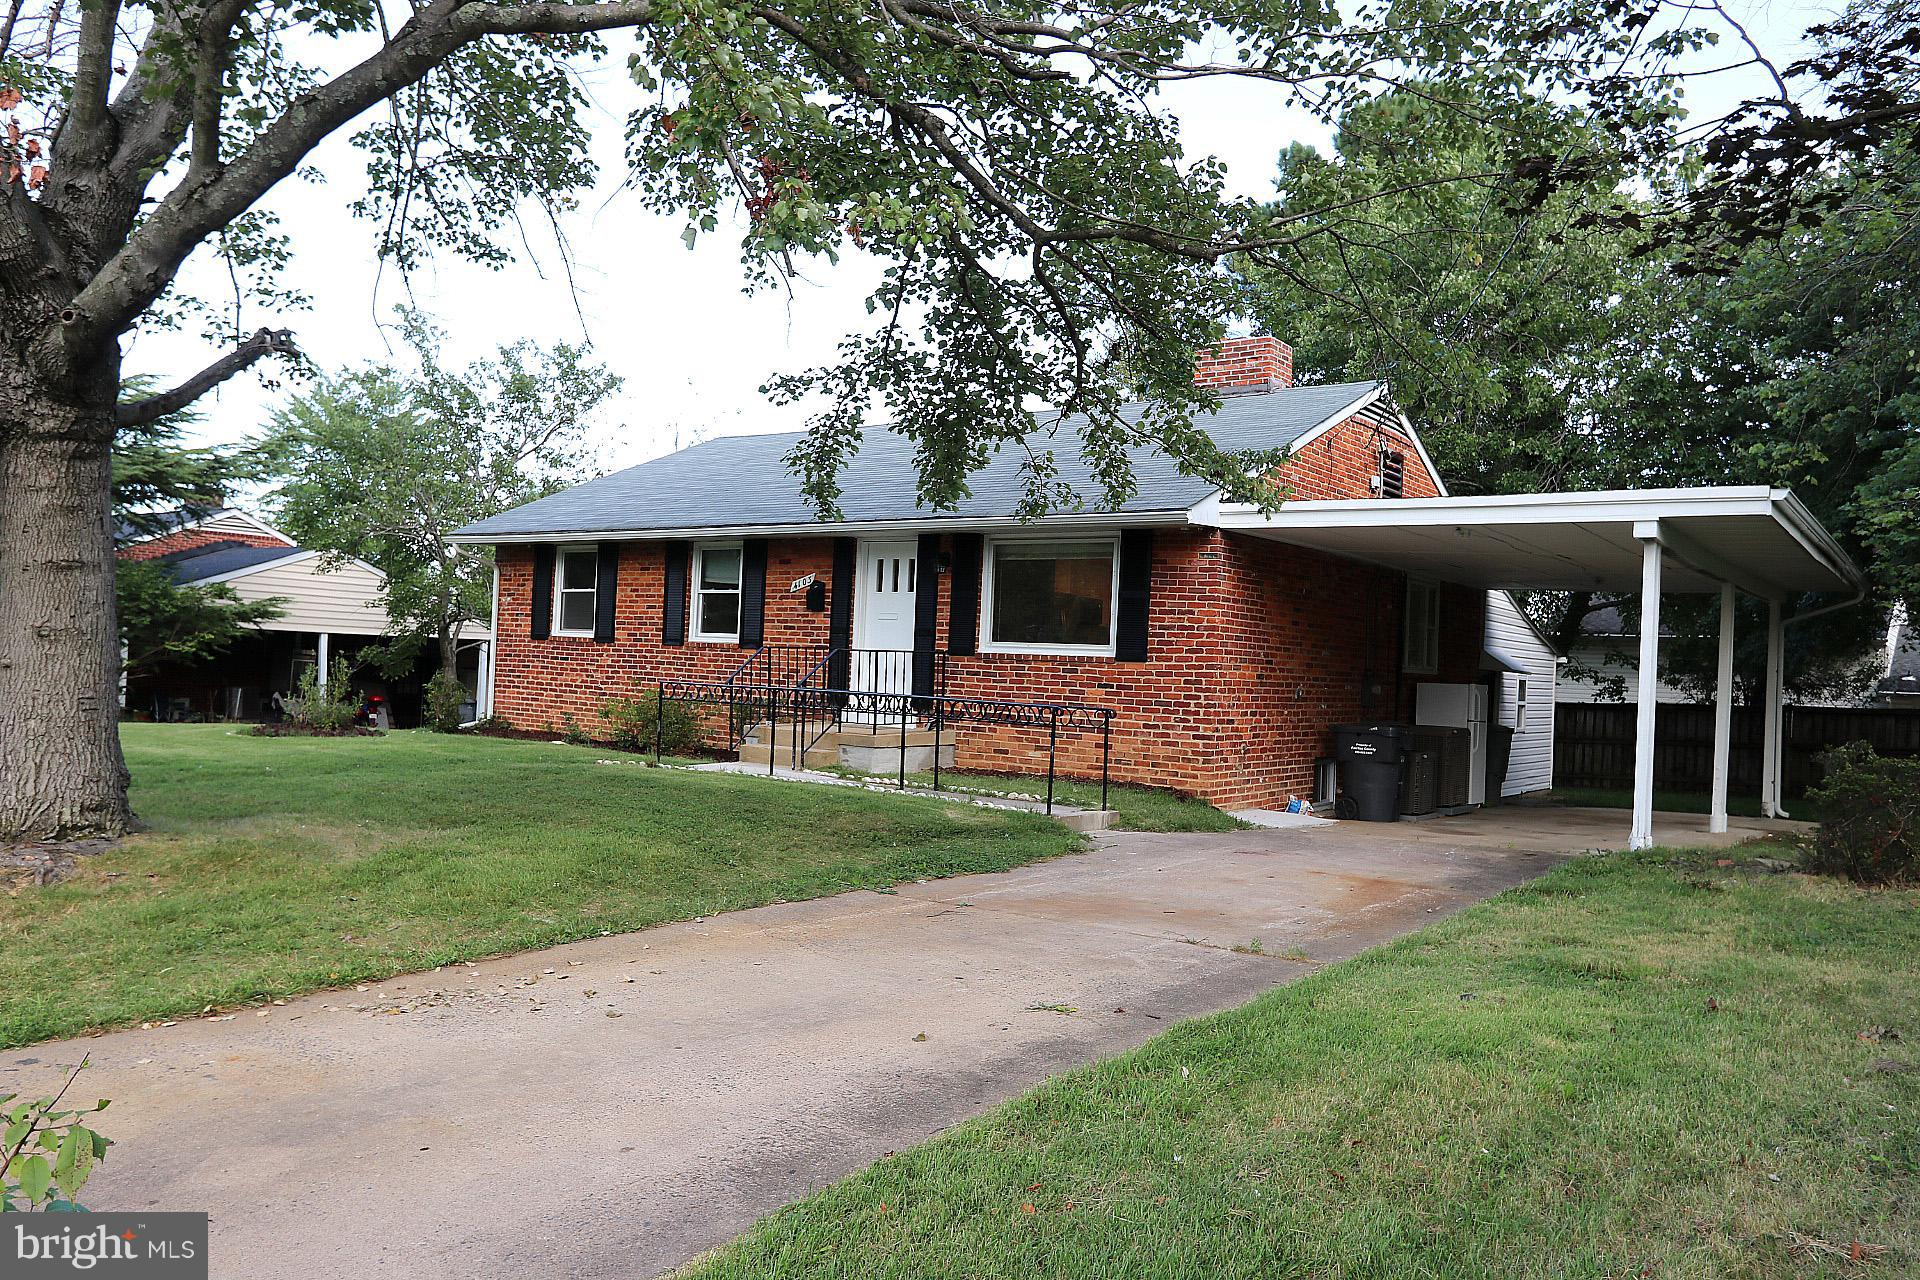 Totally remodeled home. Must see inside. $100 repair deductible clause needed in the lease.